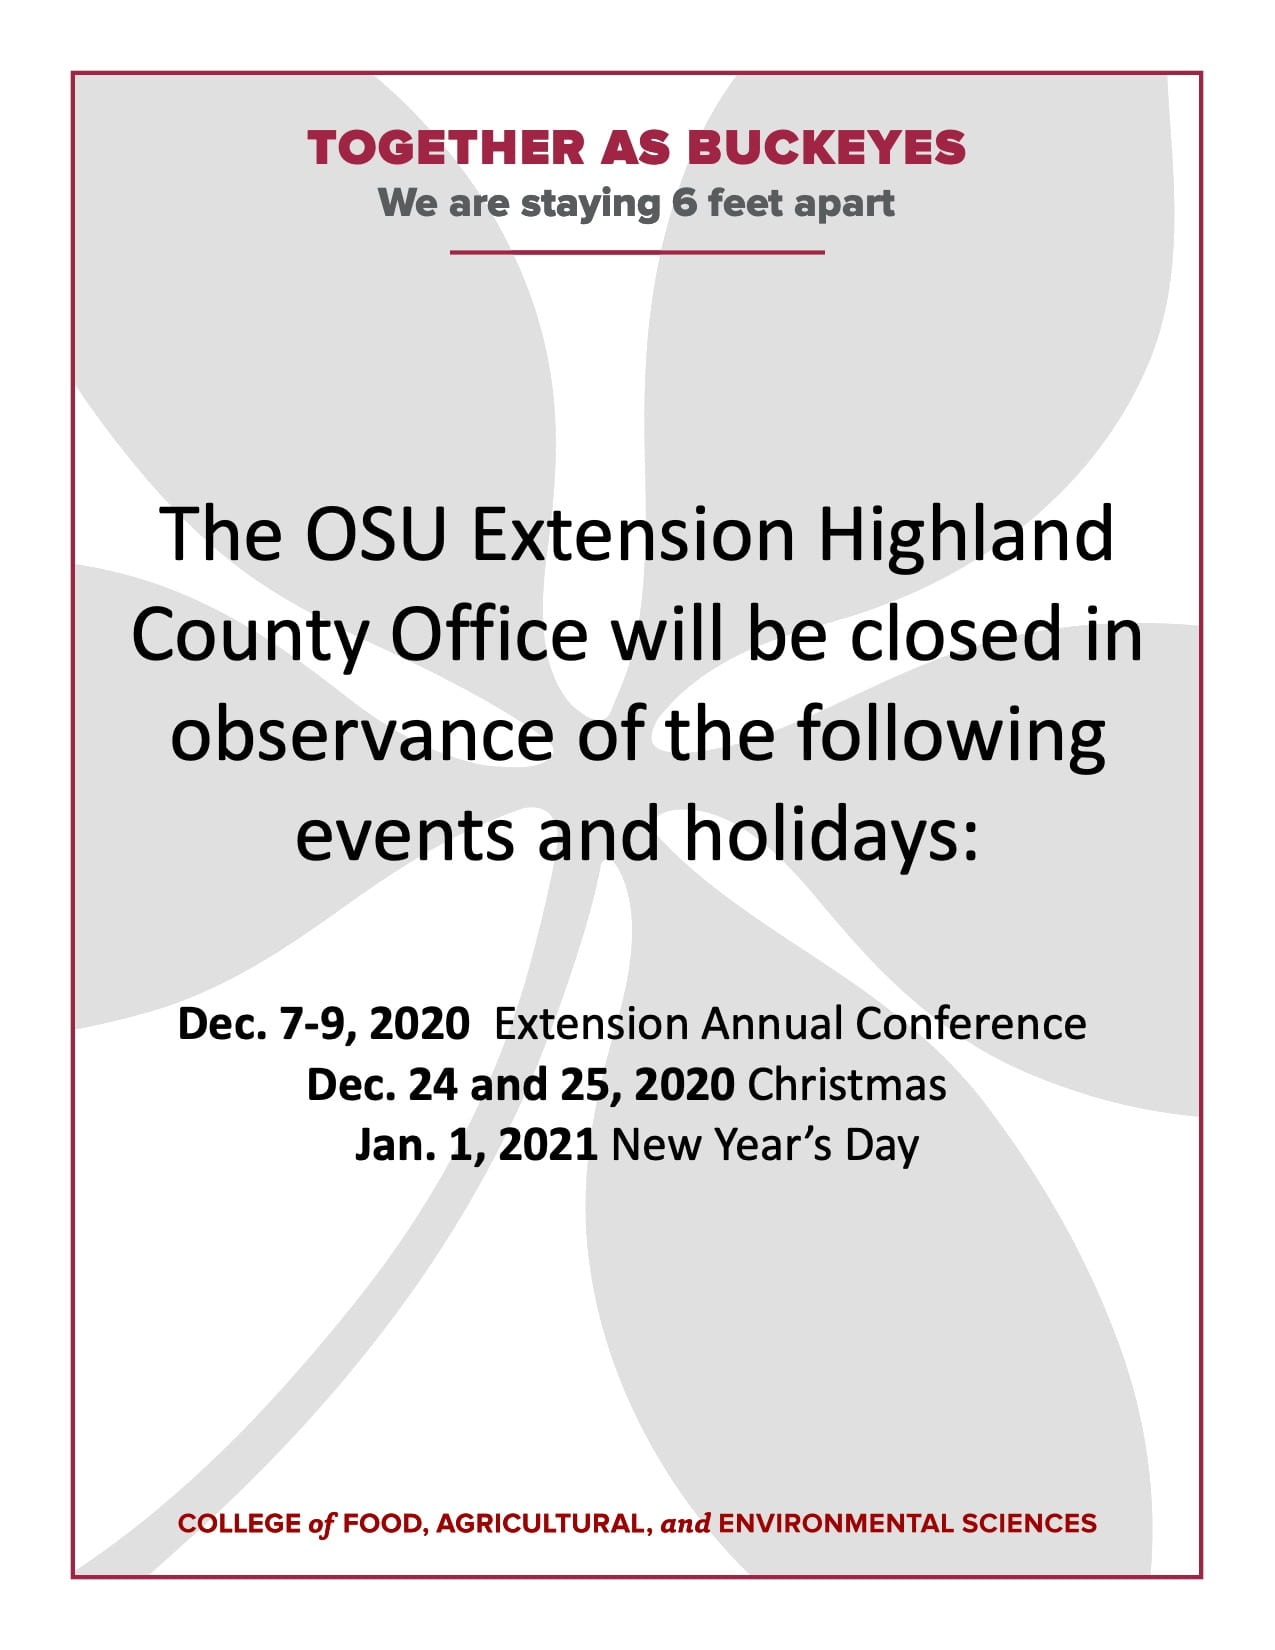 The OSU Extension Highland County Office will be closed in observance of the following events and holidays: Dec. 7-9, 2020 Extension Annual Conference; Dec. 24 and 25, 2020 Christmas, and Jan. 1 2021 New Year's Day